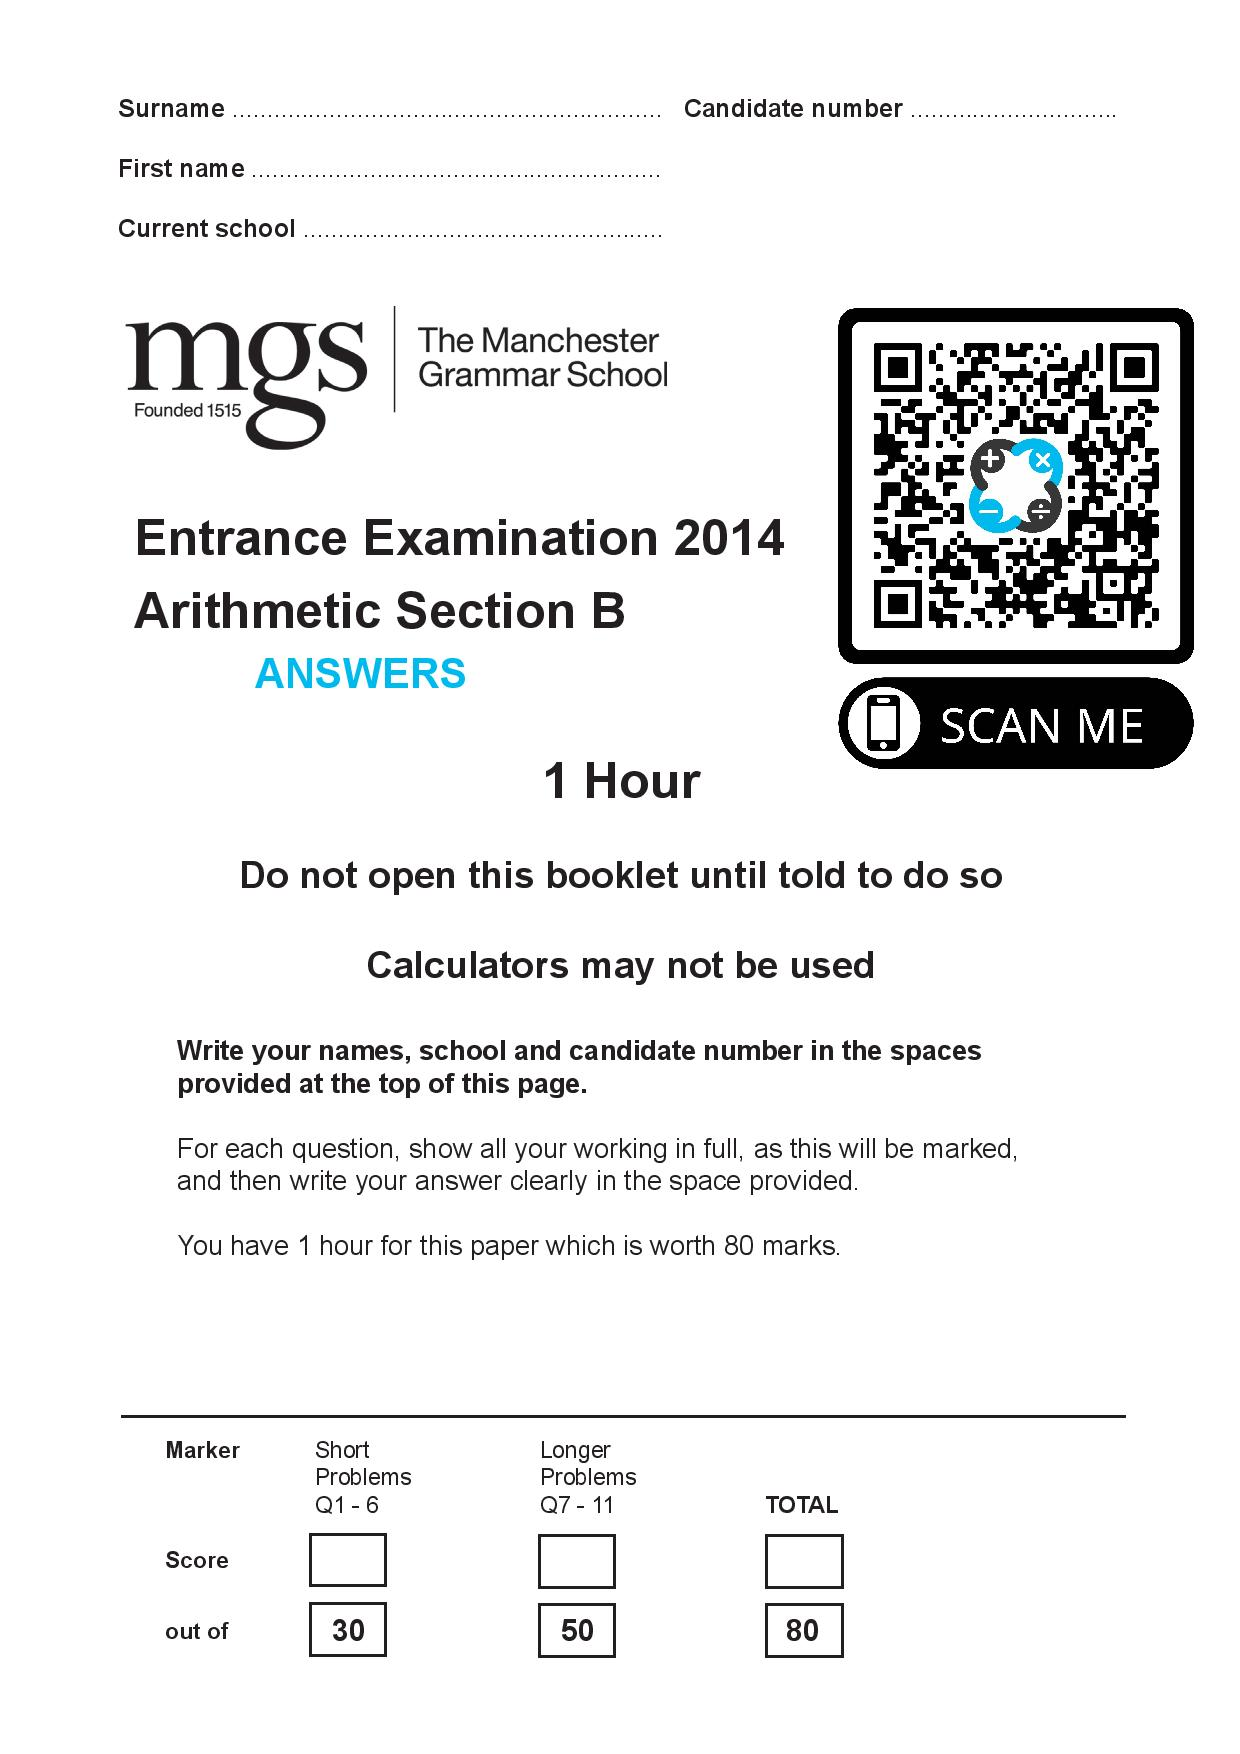 The Manchester Grammar School Entrance Examination 2014 Arithmetic Section B Answer Paper 1 page 001